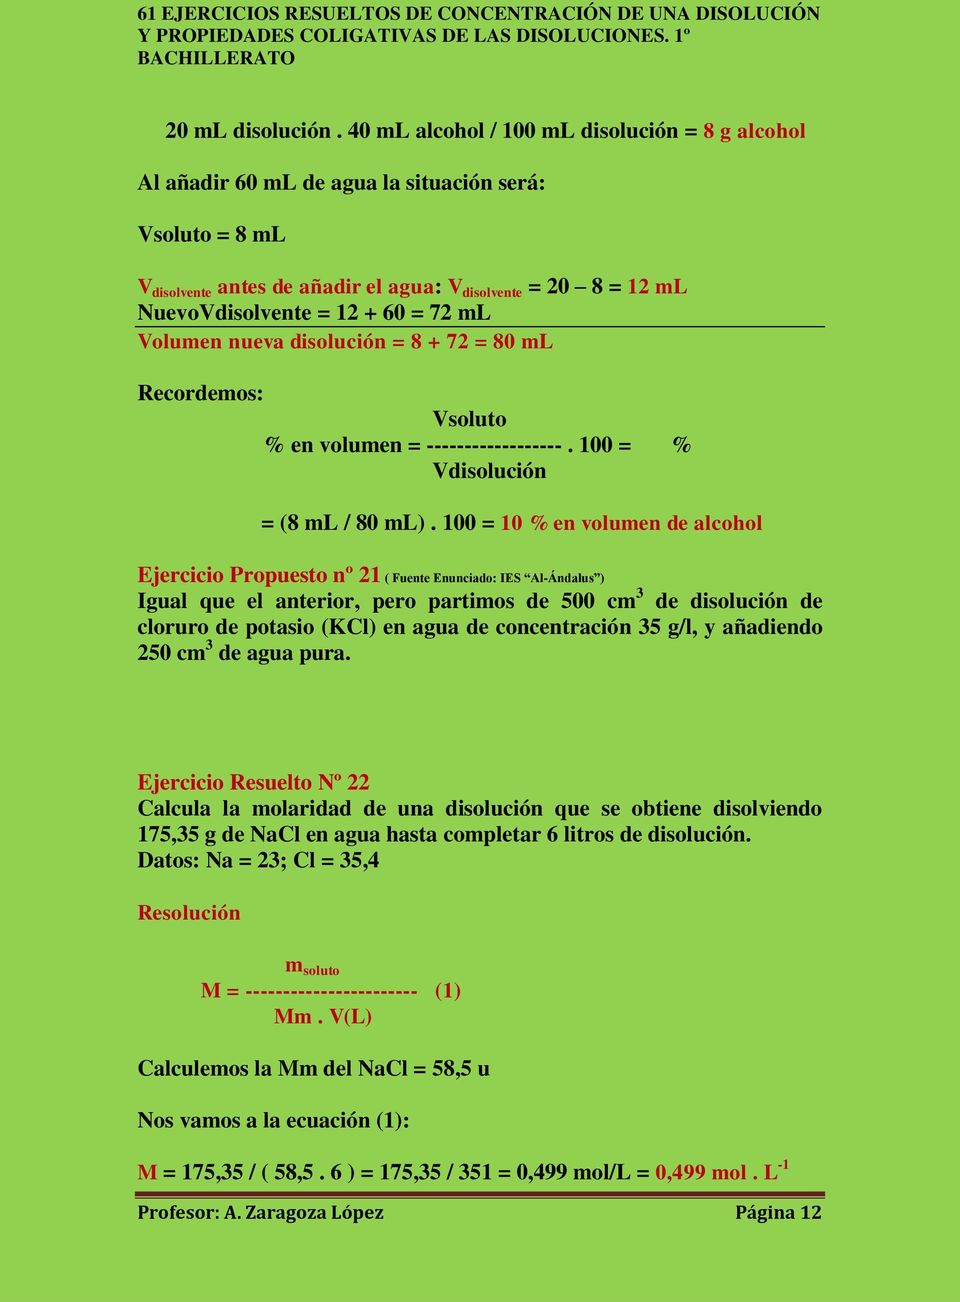 = 72 ml Volumen nueva disolución = 8 + 72 = 80 ml Recordemos: Vsoluto % en volumen = ------------------. 100 = % Vdisolución = (8 ml / 80 ml).